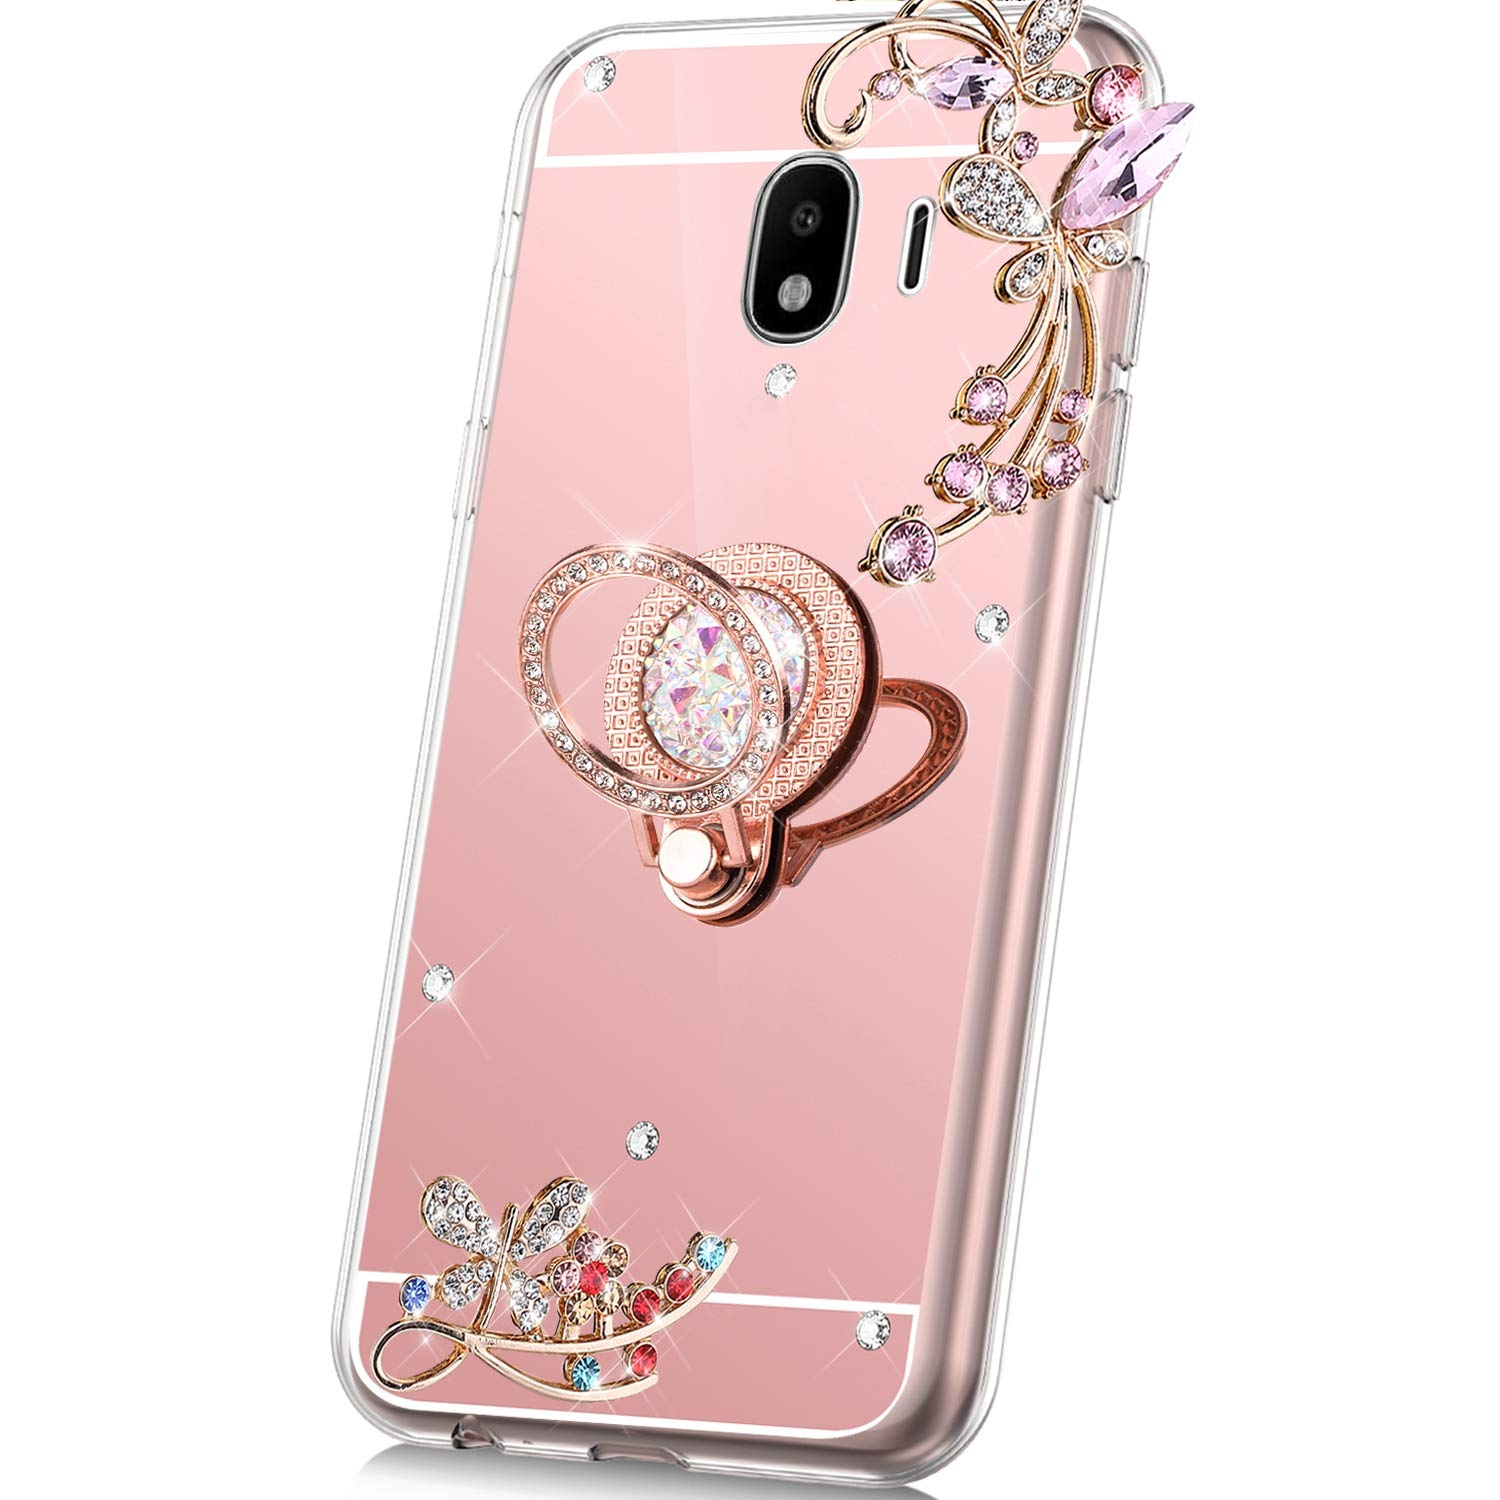 Case for Samsung Galaxy J4 2018 Mirror Case,Bling Glitter Flowers Sparkle Rhinestone Mirror Back TPU Silicone Case Cover with Ring Kickstand Diamond Crystal Case for Galaxy J4 2018,Rose Gold by PHEZEN